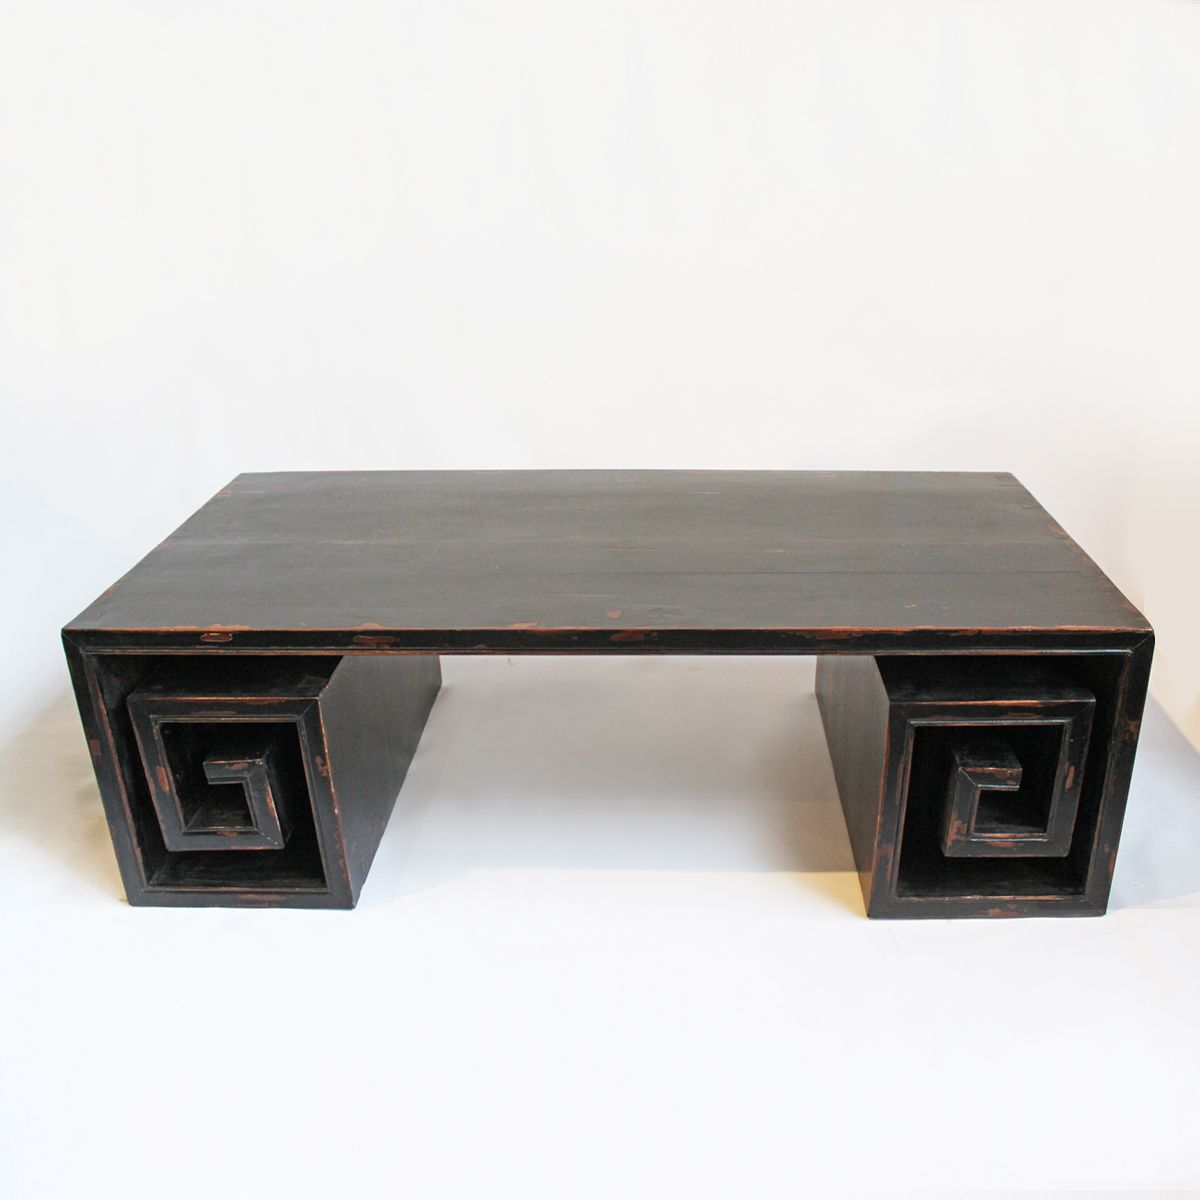 Vintage Black Distressed Coffee Table With Greek Key Rolled Leg. Distressed  Black Finish With A